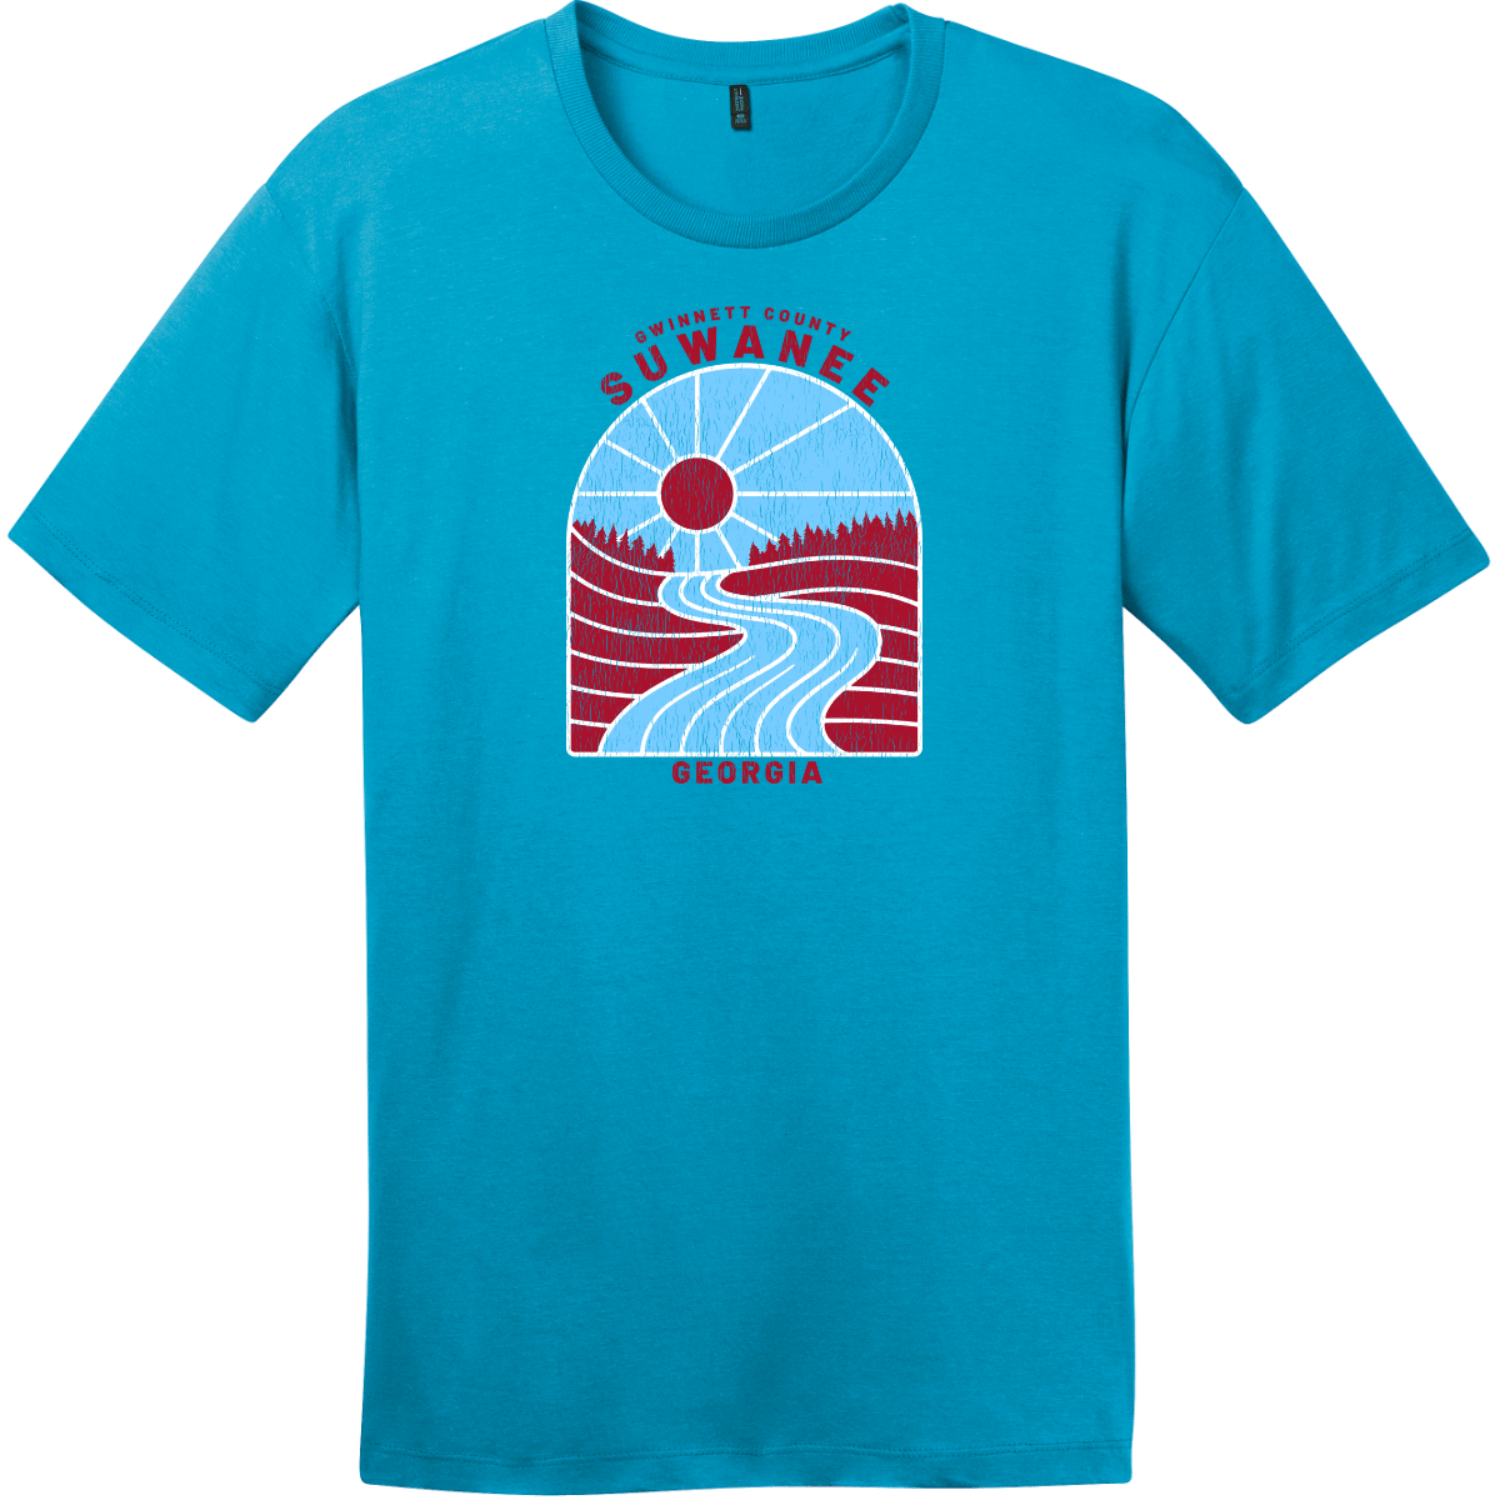 Suwanee Georgia River Retro T Shirt Bright Turquoise District Perfect Weight Tee DT104